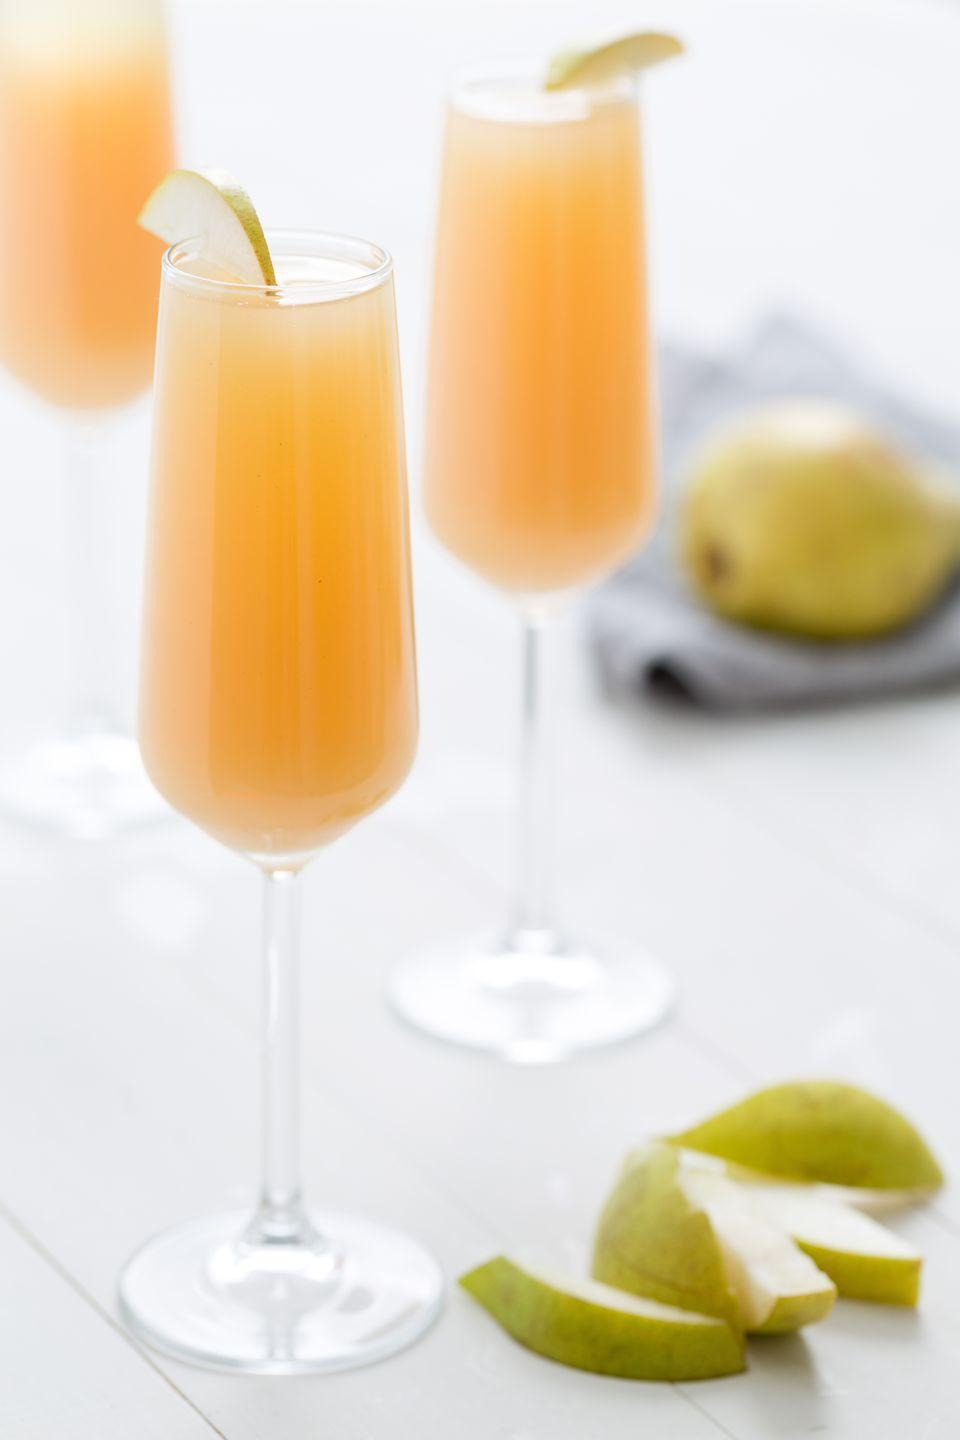 "<p>On its own, pear nectar can be a little, well, thick. But cut it with 2 parts dry champagne and you're in business.</p><p>Get the recipe from <a href=""https://www.delish.com/cooking/recipe-ideas/recipes/a46970/pear-mimosas-recipe/"" rel=""nofollow noopener"" target=""_blank"" data-ylk=""slk:Delish"" class=""link rapid-noclick-resp"">Delish</a>.</p>"